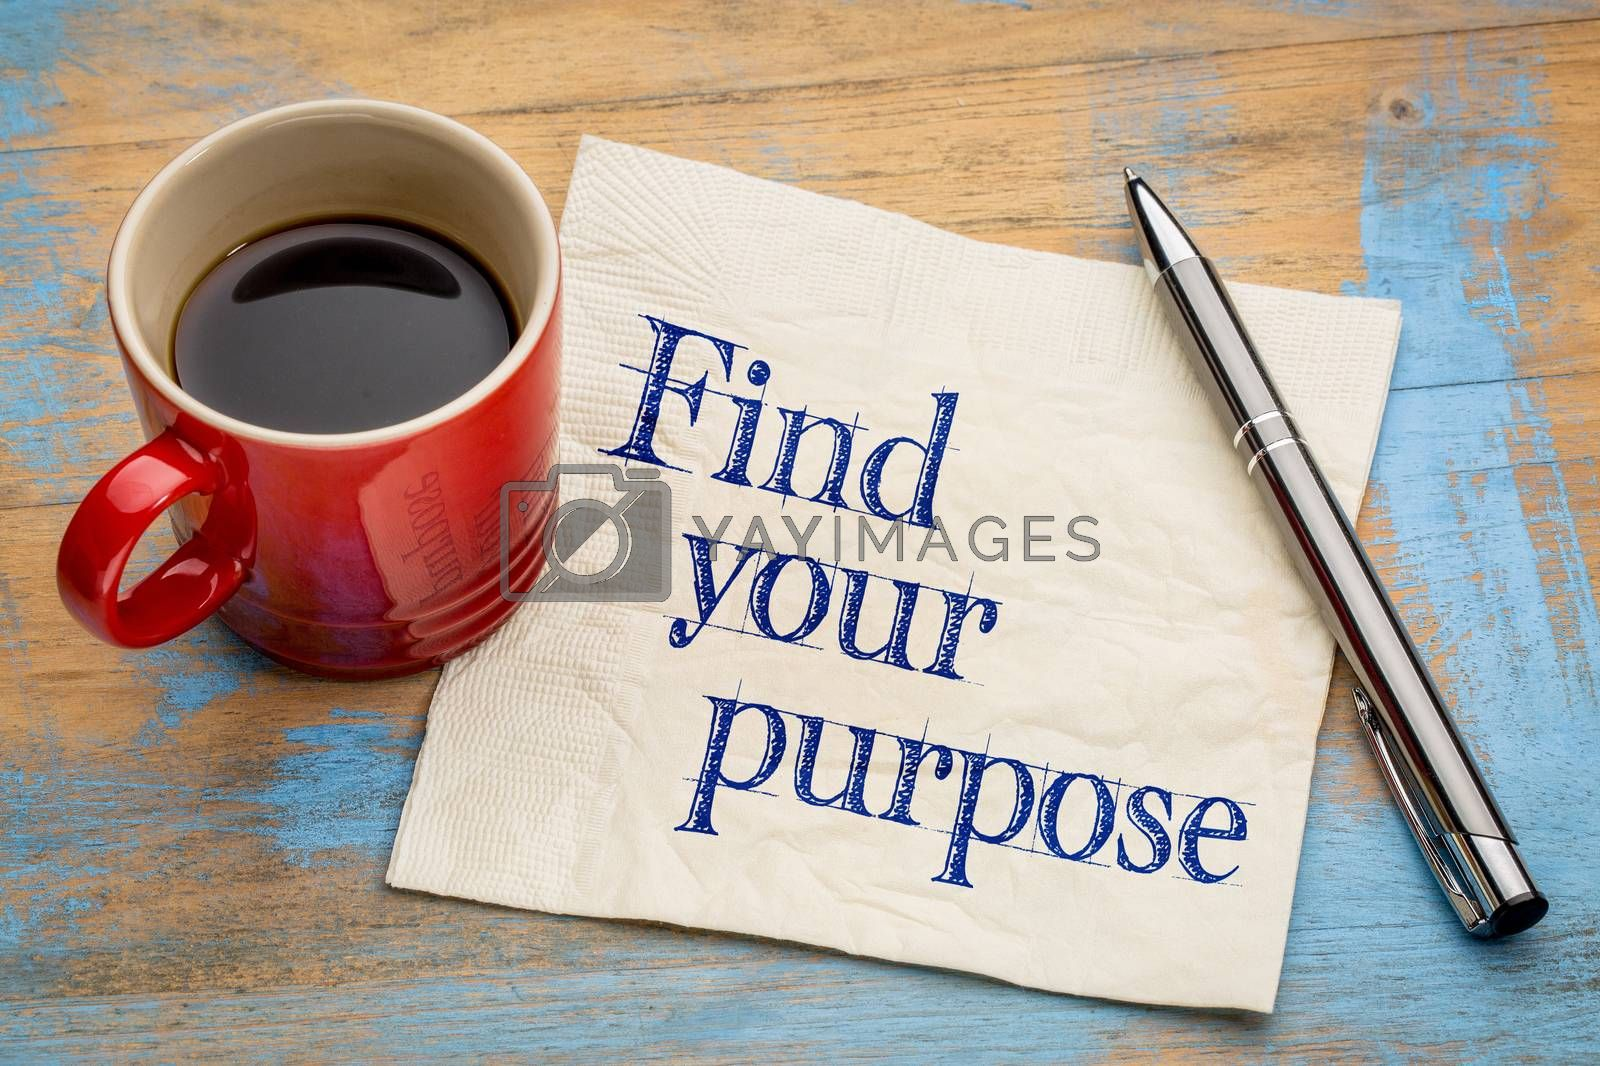 Find your purpose advice by PixelsAway